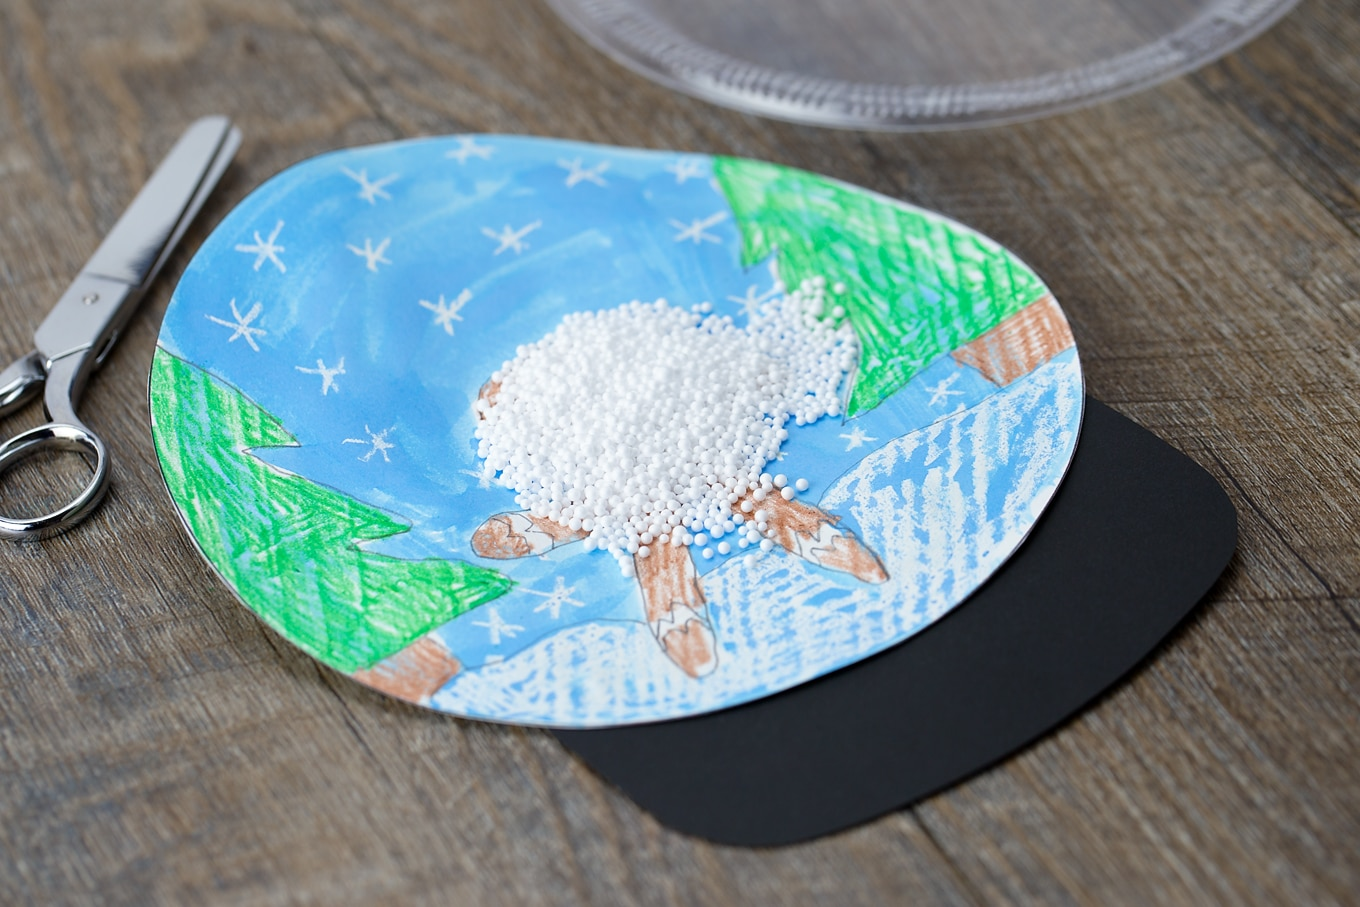 Plastic Plate Snow Globe Craft In-Process